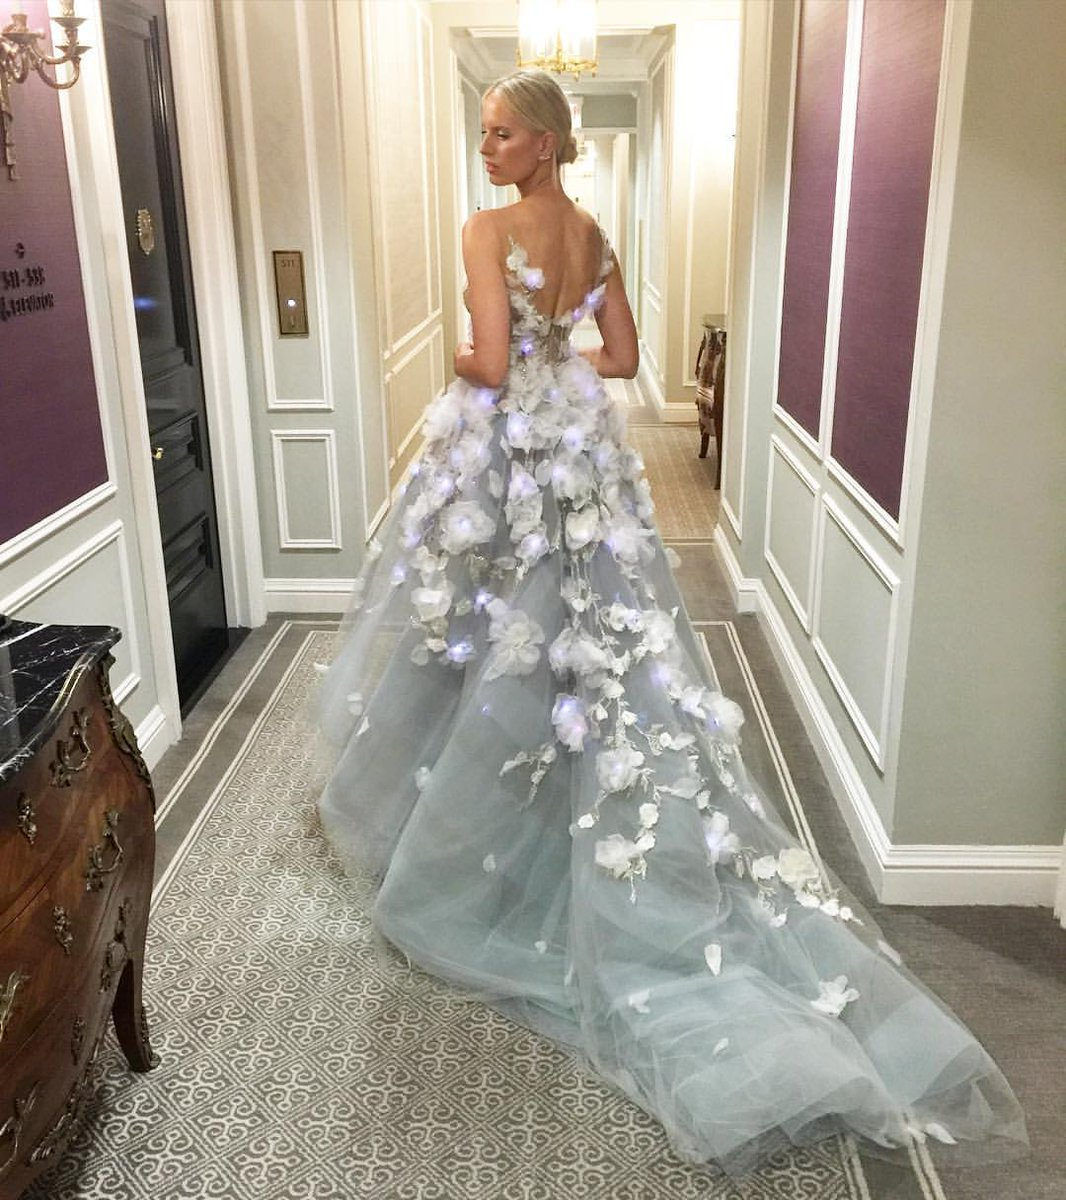 On my way! @marchesafashion #MetGala #emotionalintelligence #wearabletech @ibm #MetGala2016 https://t.co/nyI6OR22wC